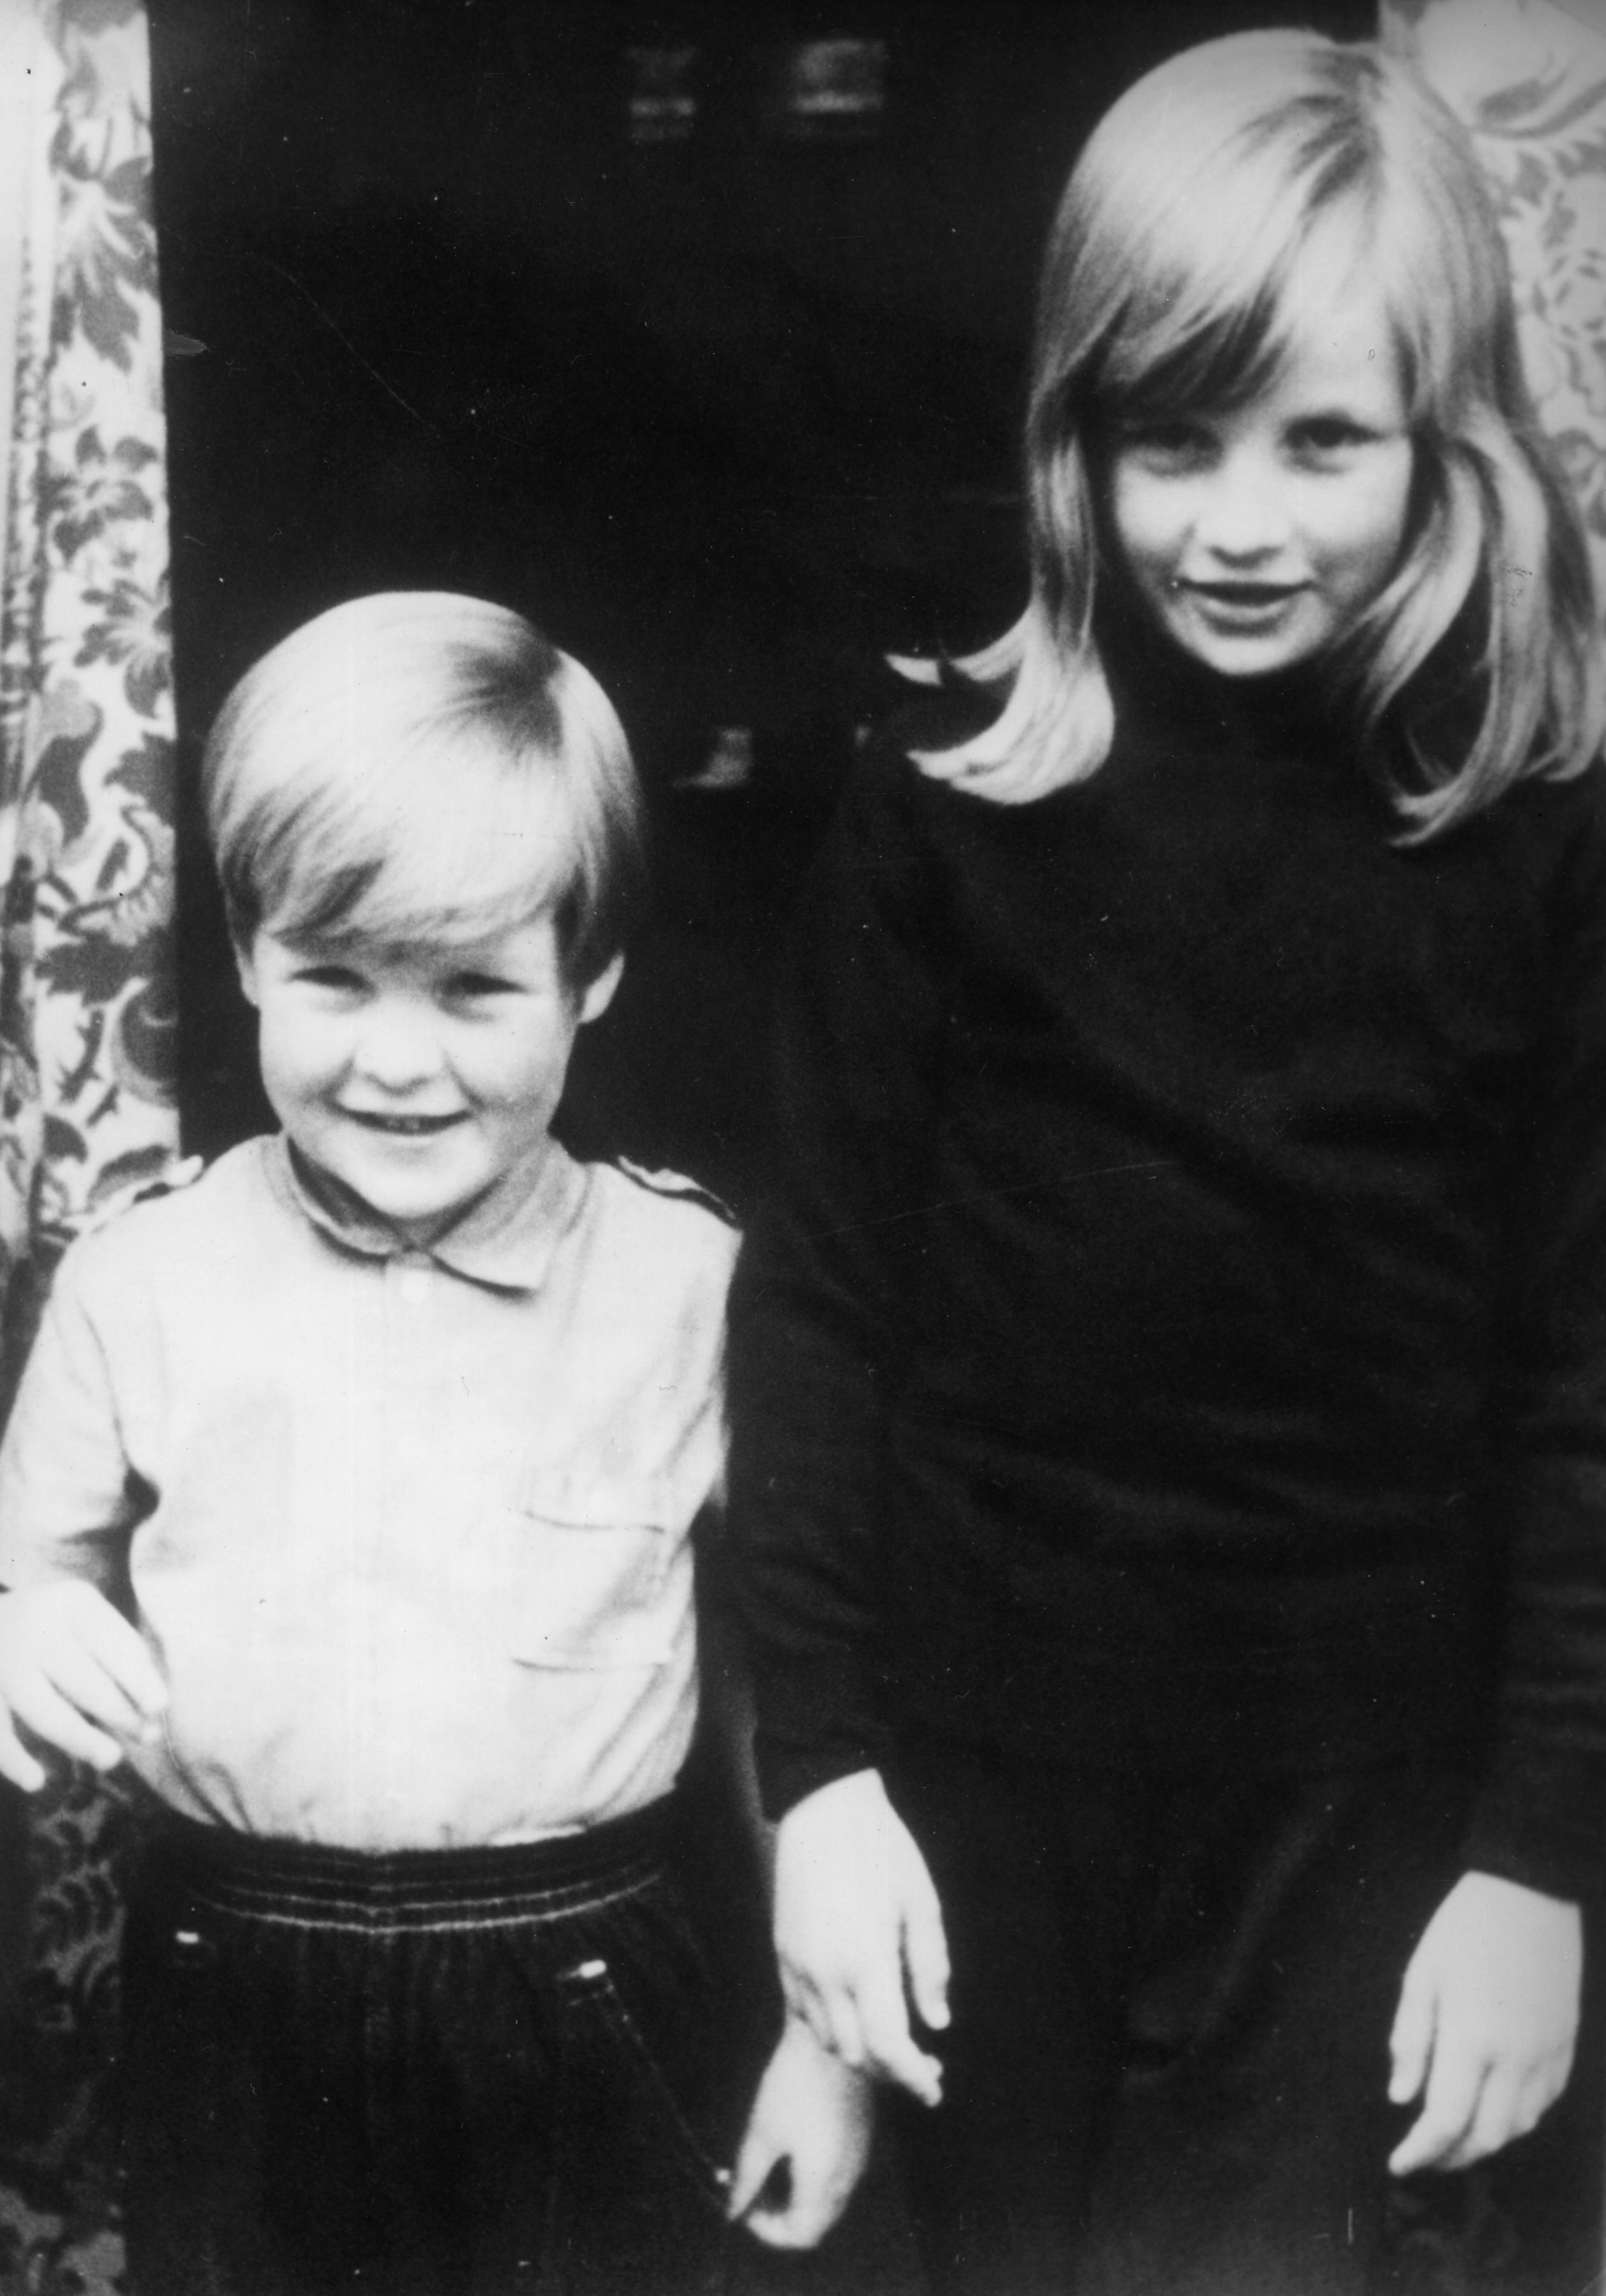 Princess Diana S Brother Opened Up About Their Childhood Trauma